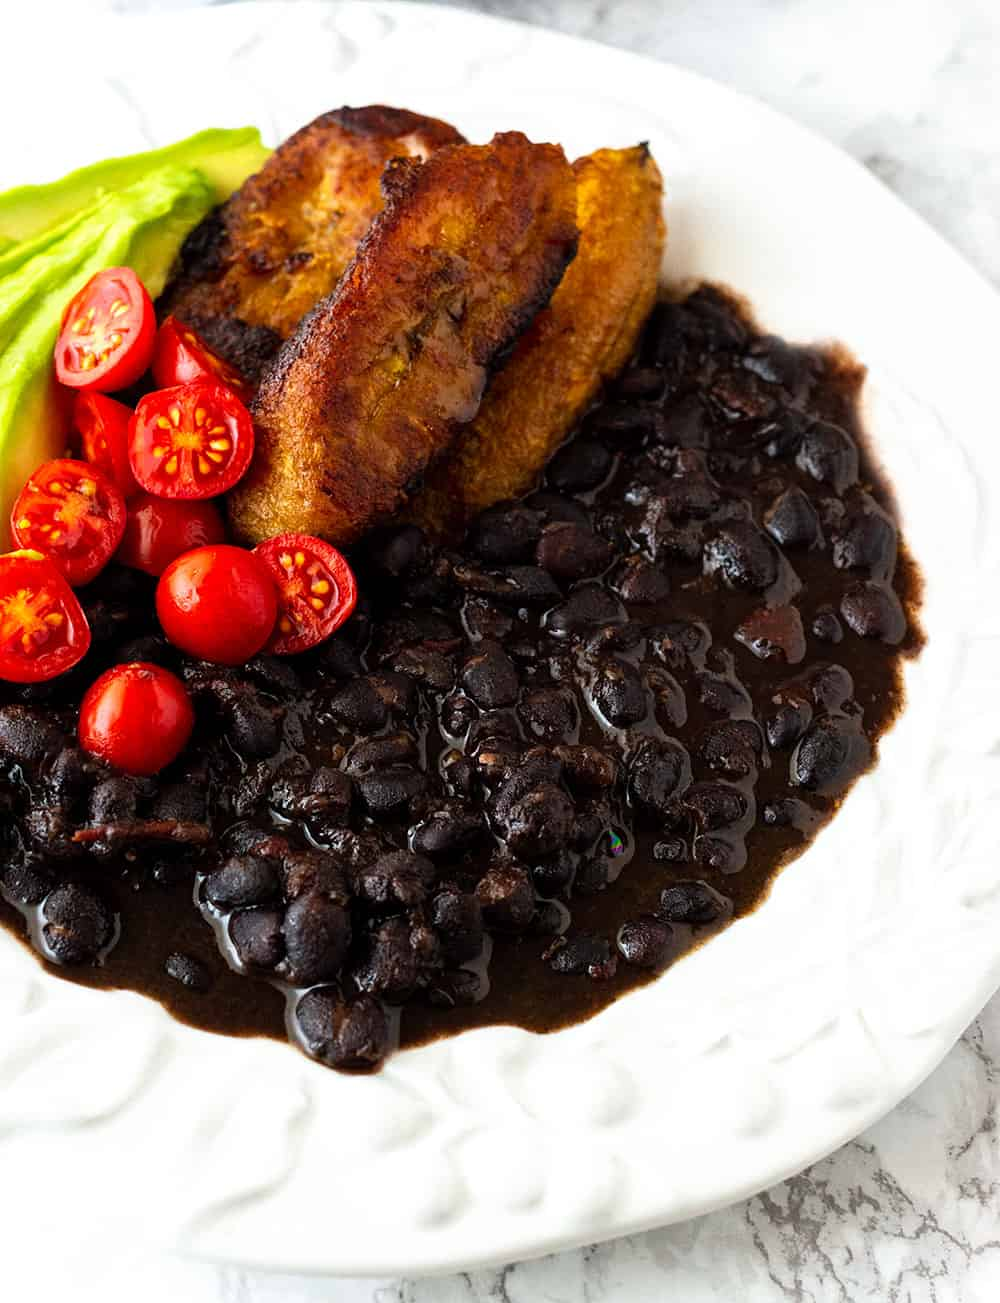 Instant Pot Black Beans Served With Plantains Avocado and Tomatoes